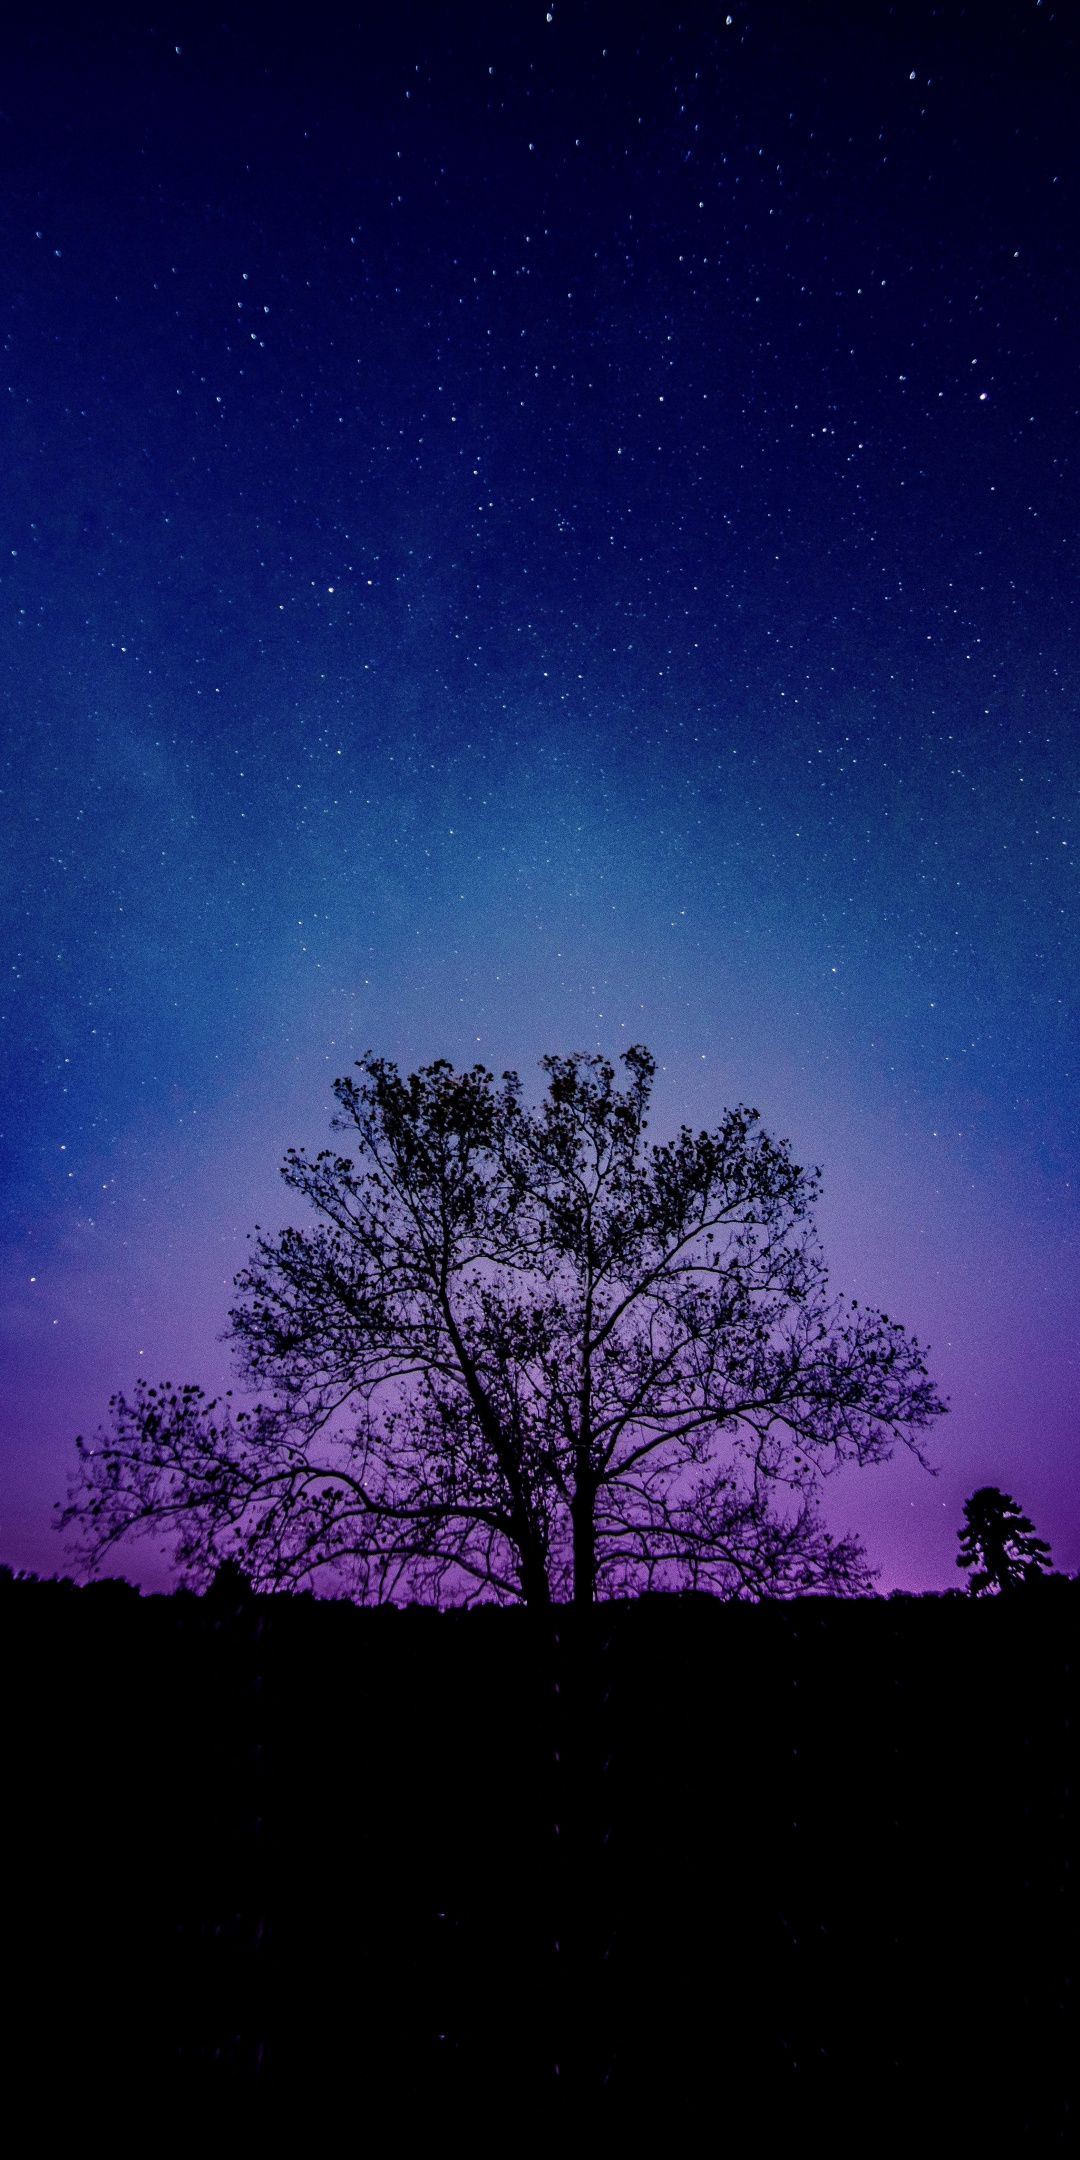 Tree Galaxy Sky Silhouette 1080x2160 Wallpaper Night Sky Wallpaper Galaxy Phone Wallpaper Phone Wallpaper